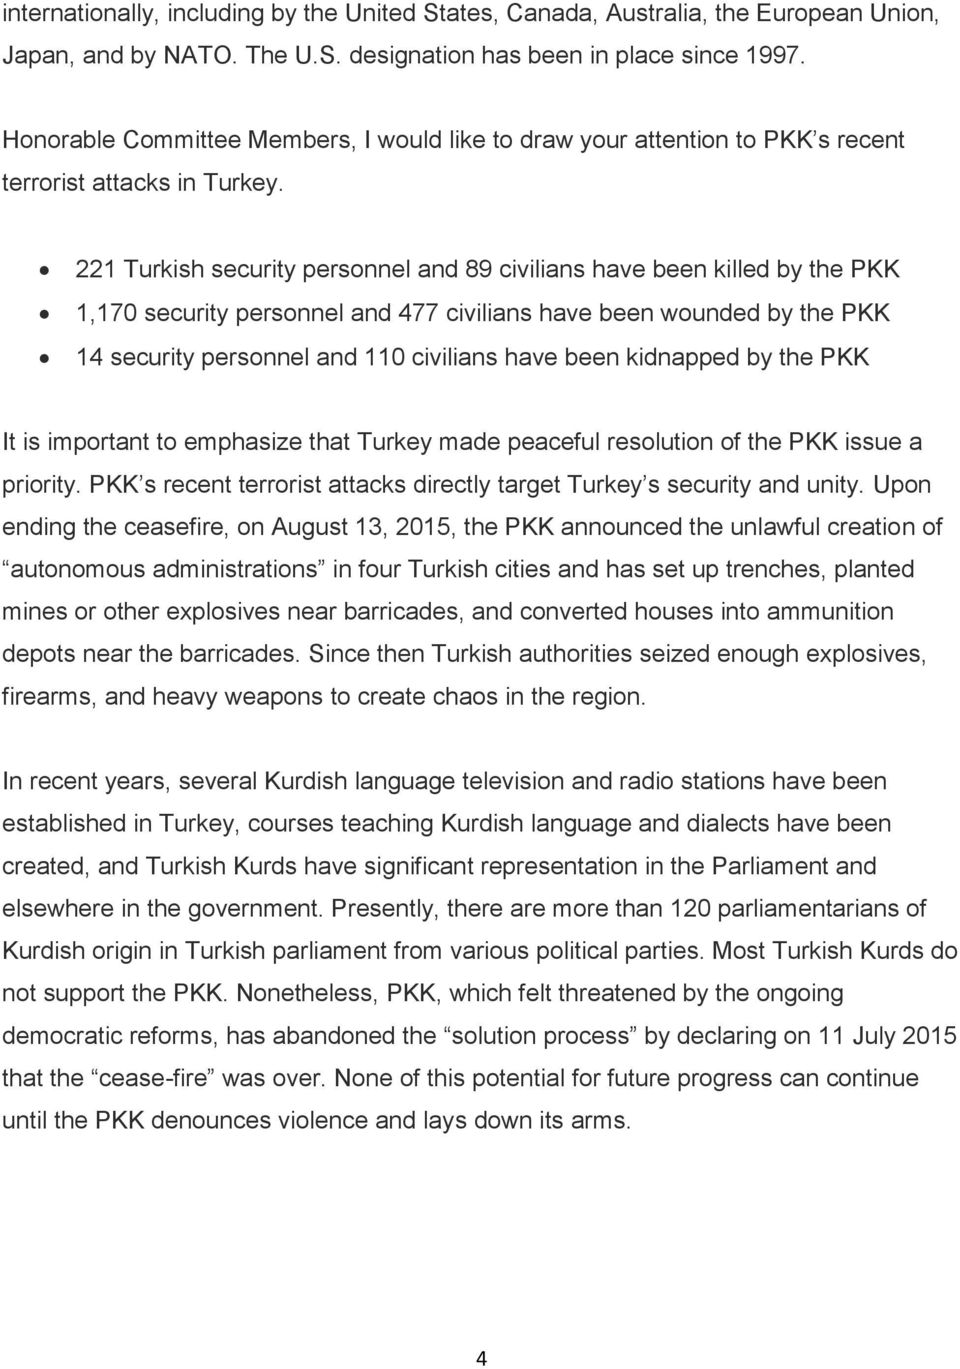 221 Turkish security personnel and 89 civilians have been killed by the PKK 1,170 security personnel and 477 civilians have been wounded by the PKK 14 security personnel and 110 civilians have been